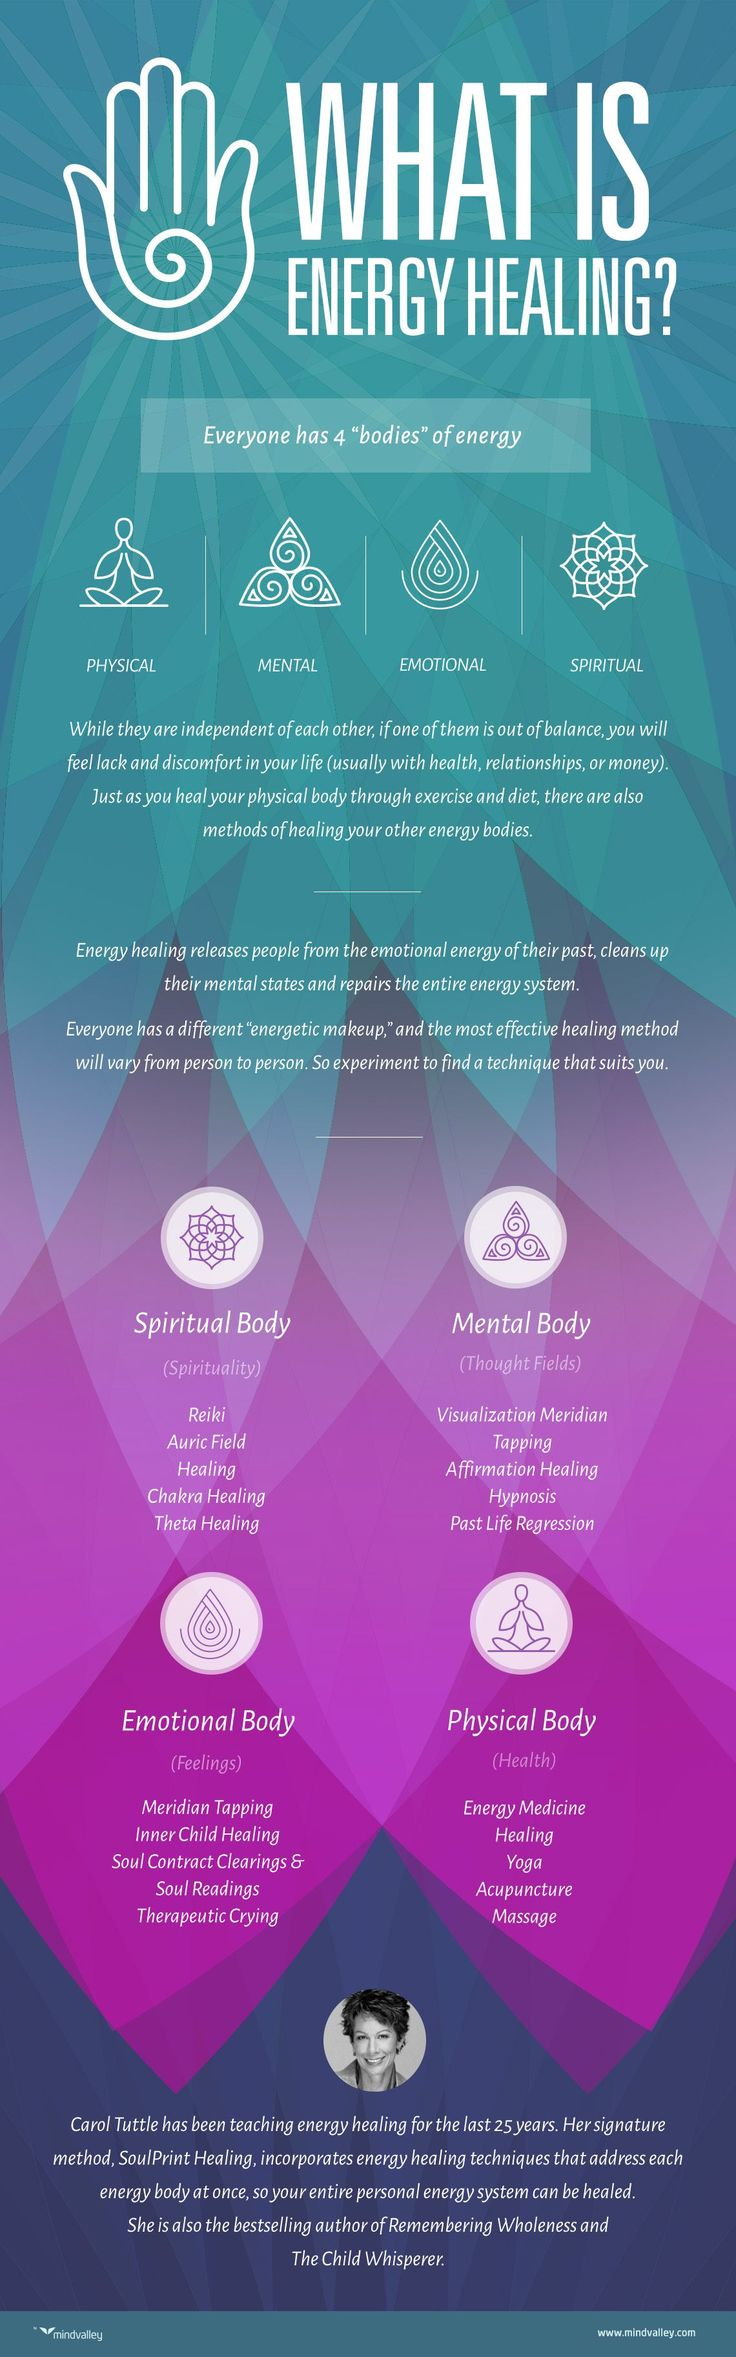 Energy Healing Explained. #energy #healing #reiki